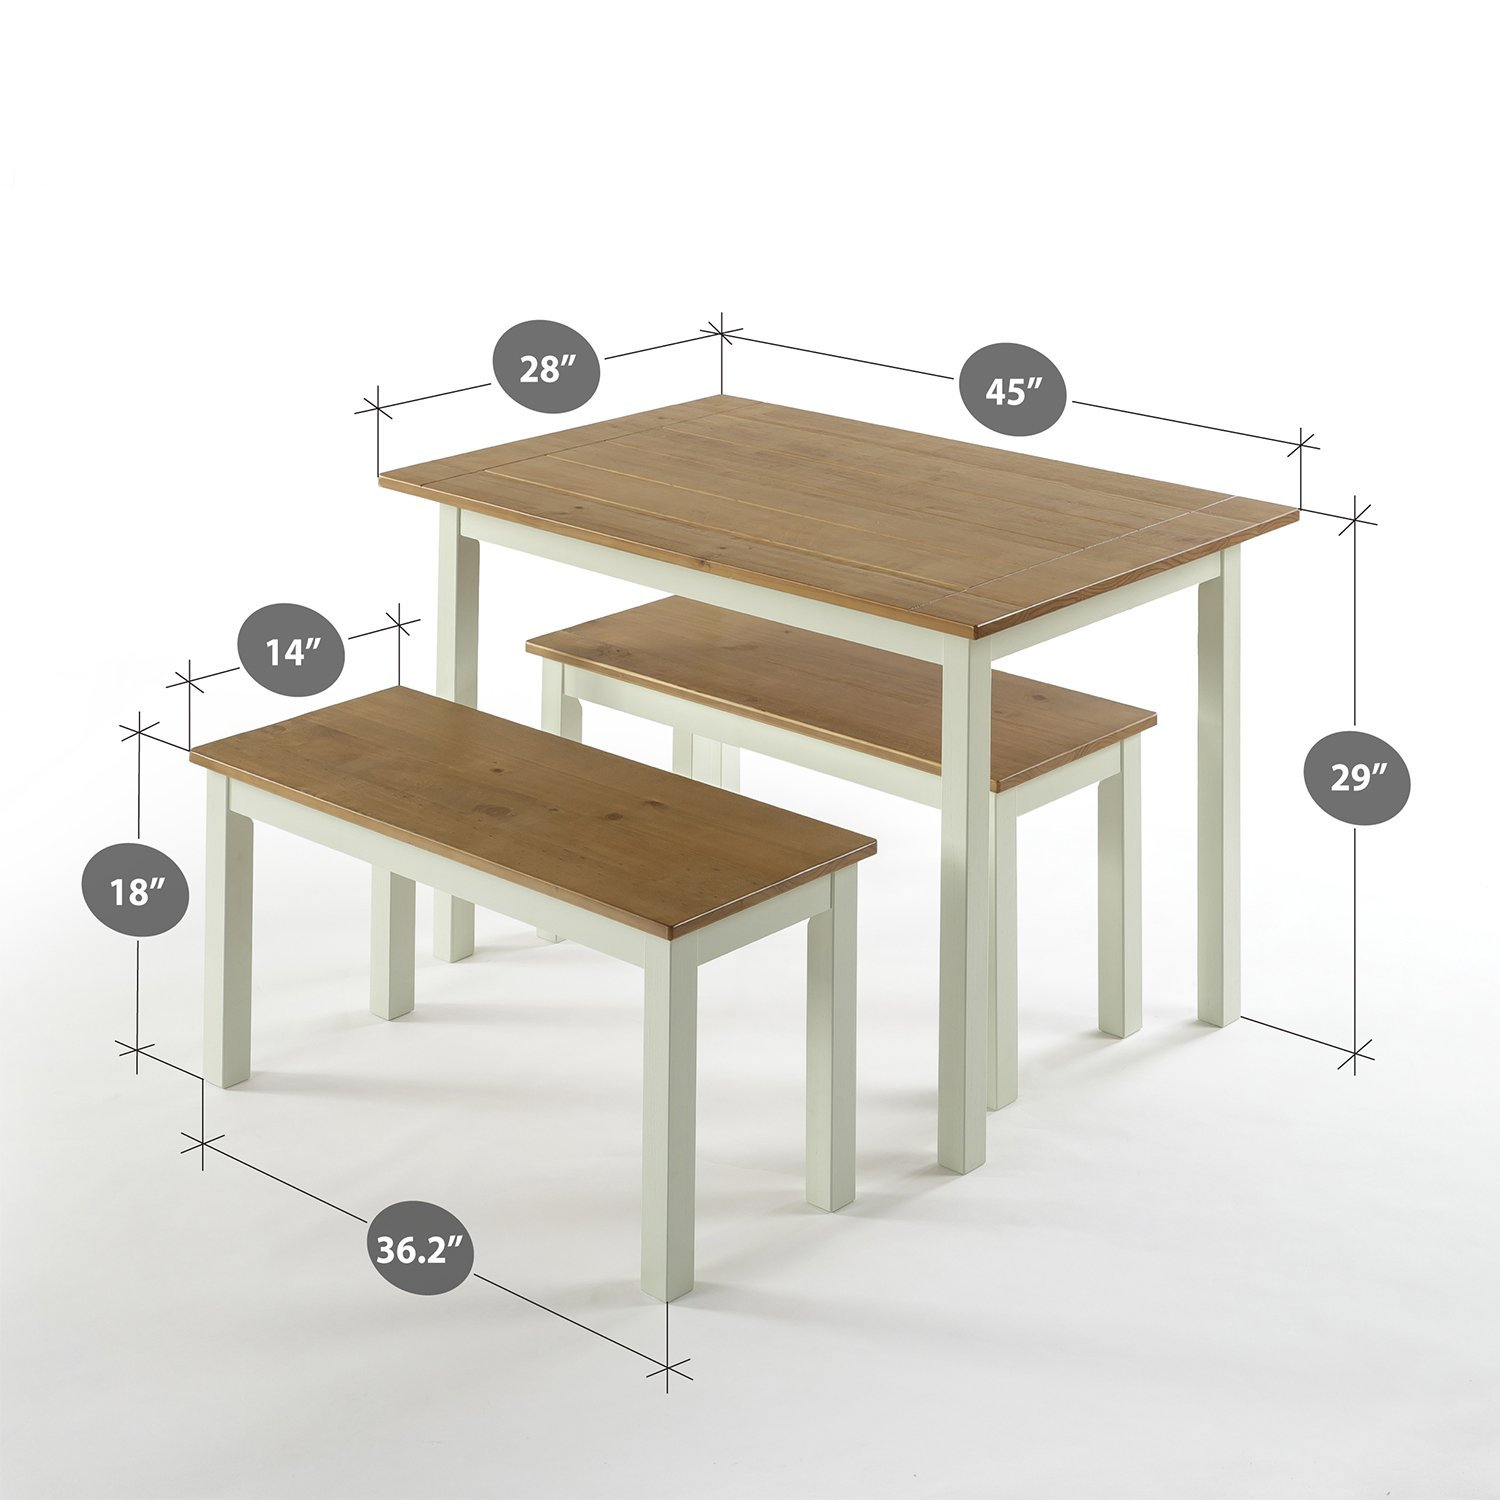 Zinus Farmhouse Dining Table Two Benches / 3 Piece Set OLB-DTS-F29